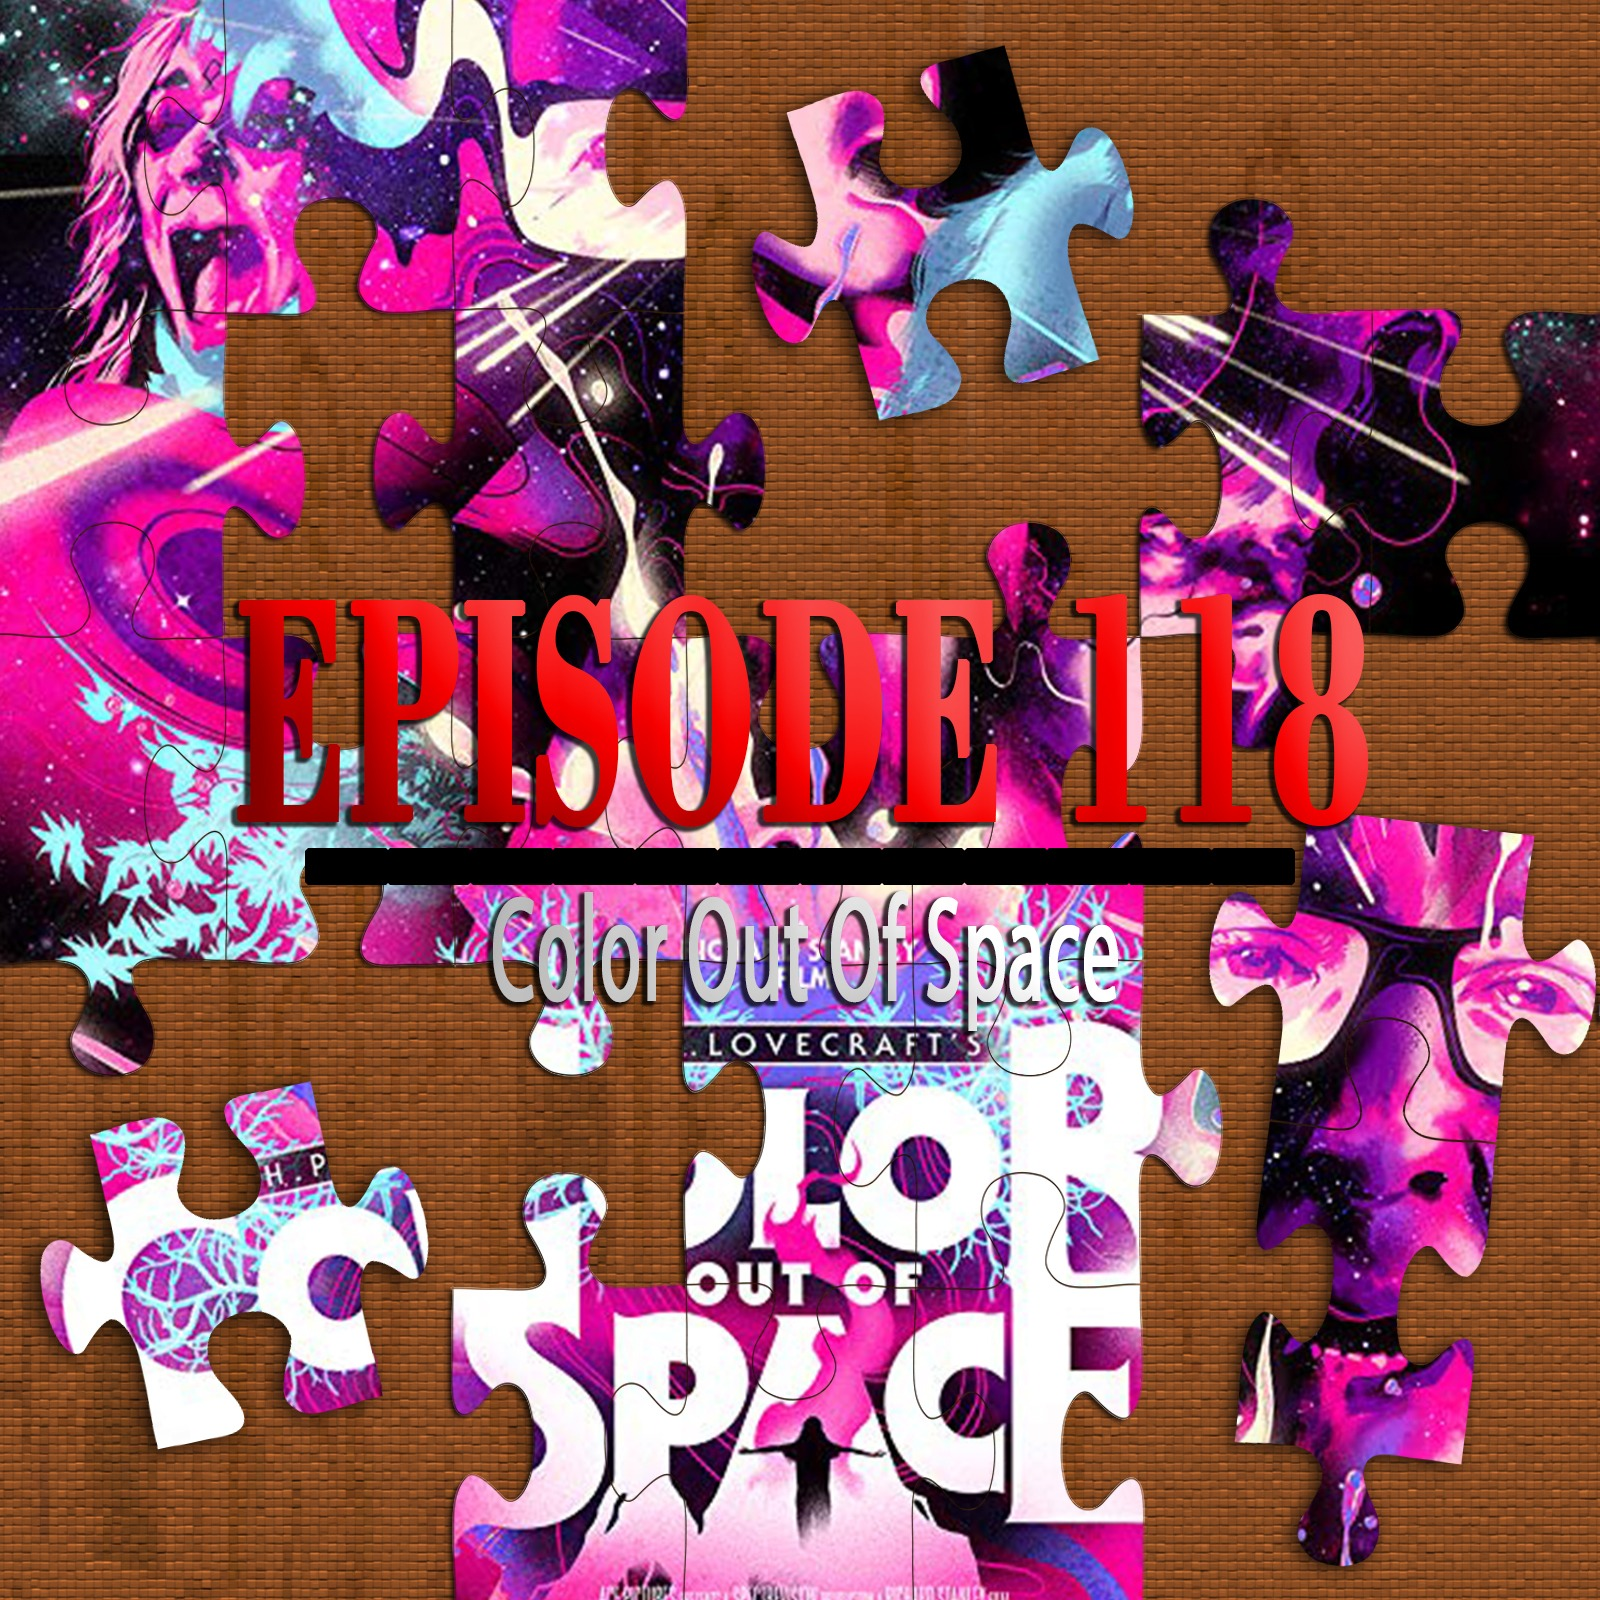 Color Out Of Space (Featuring Adam Wells)